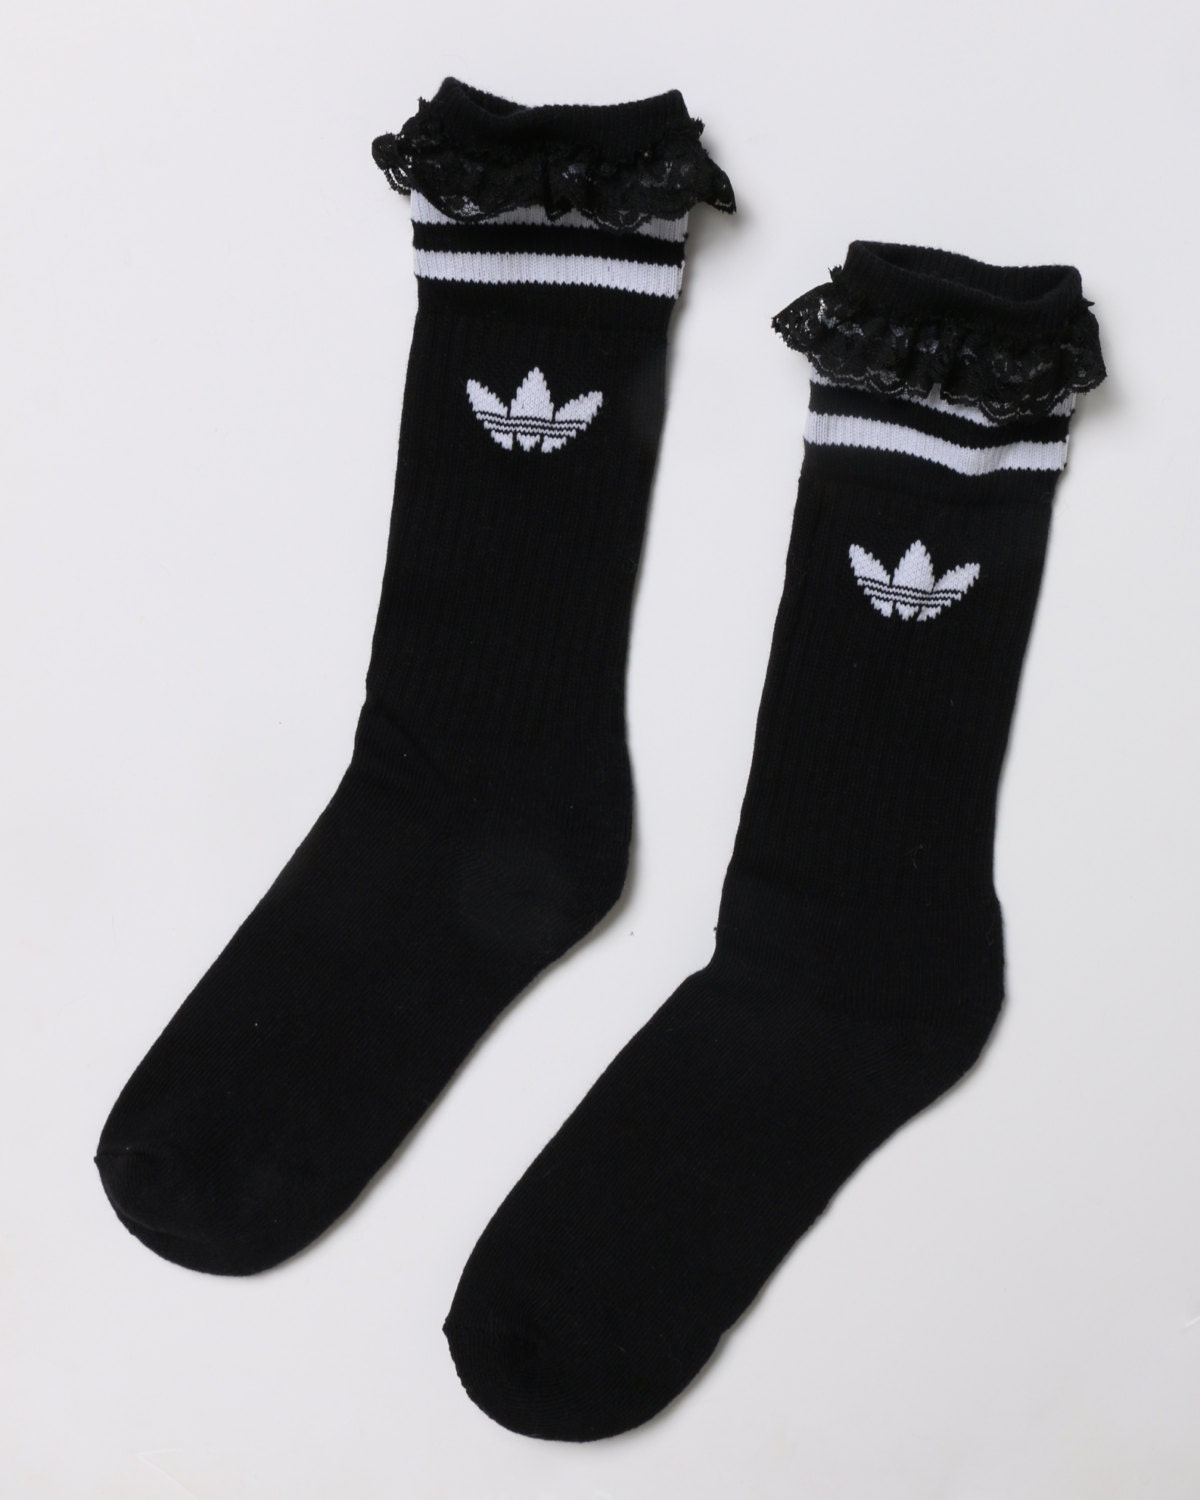 how to know size of socks by adidas